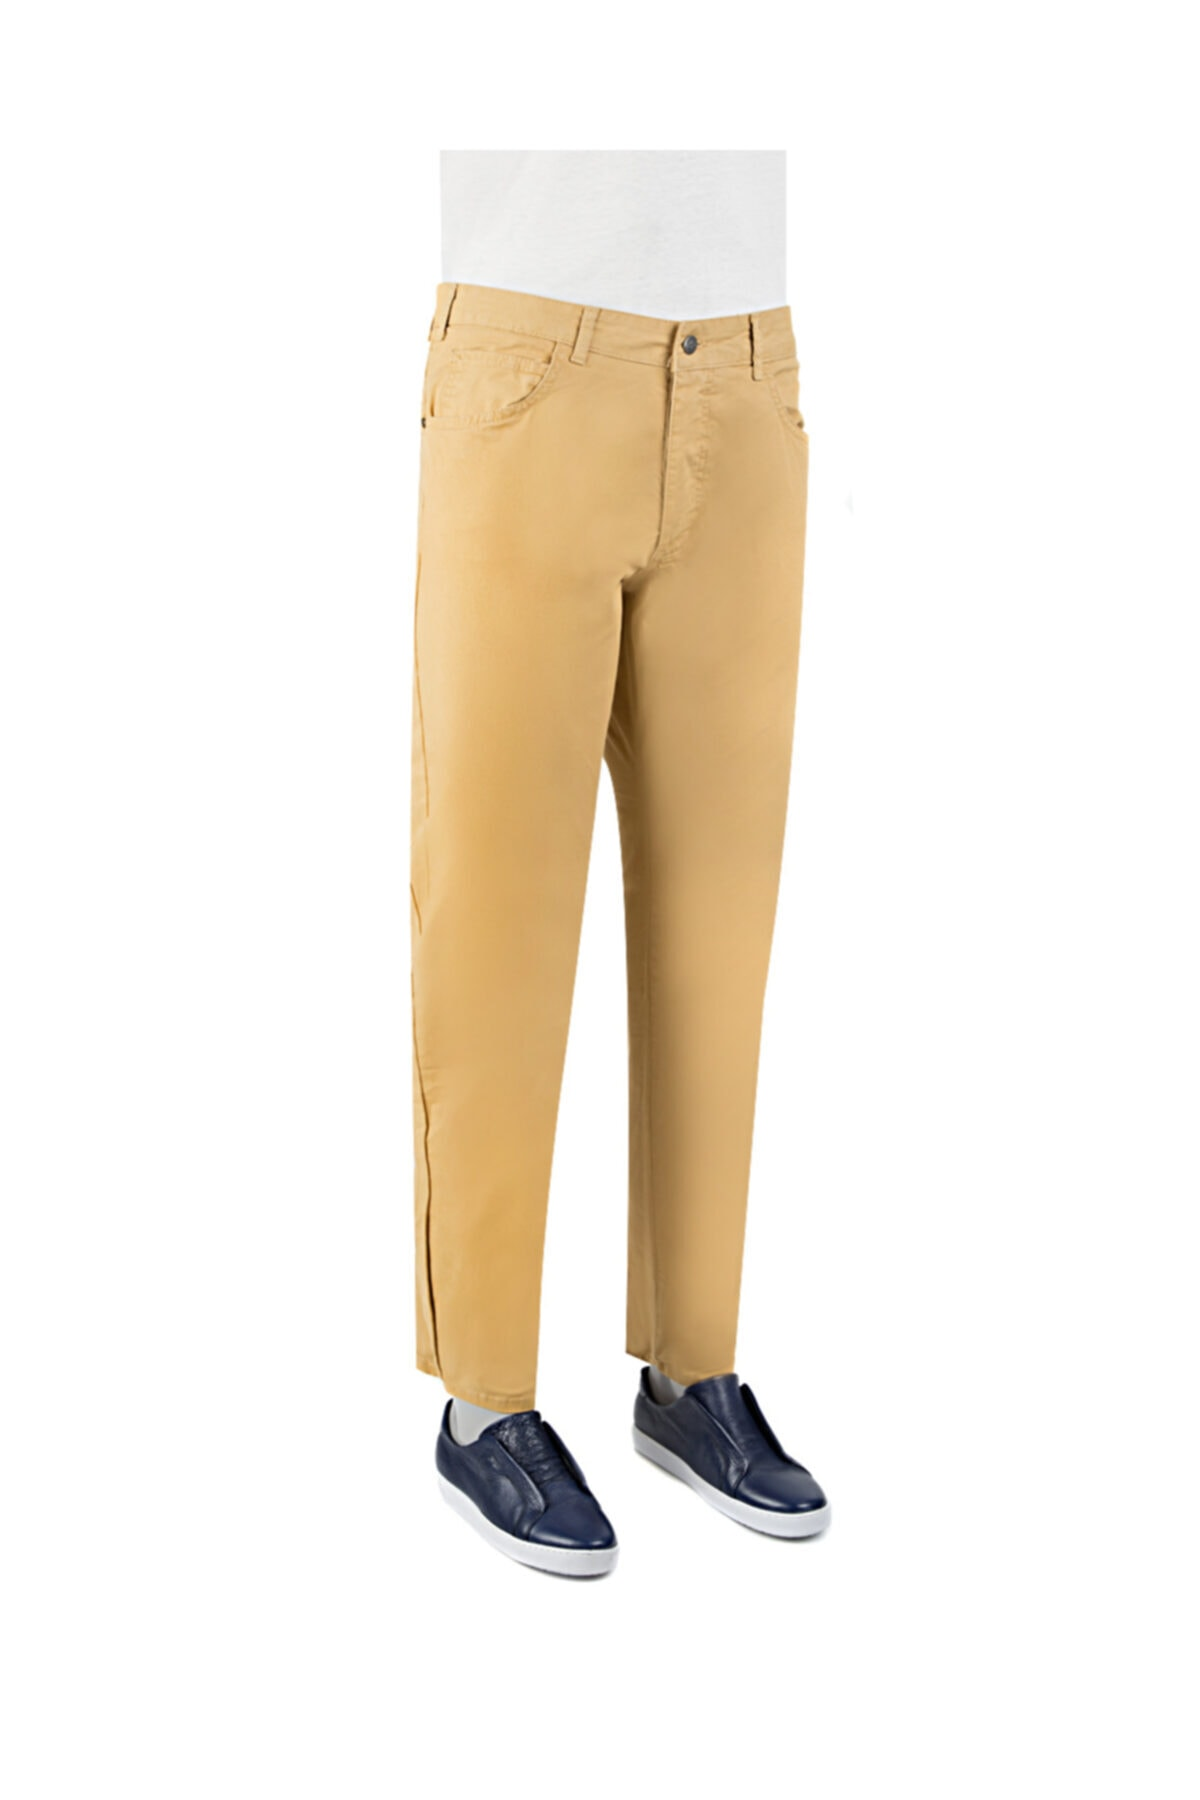 D'S Damat Slim Fit Hardal Chino Pantolon 1